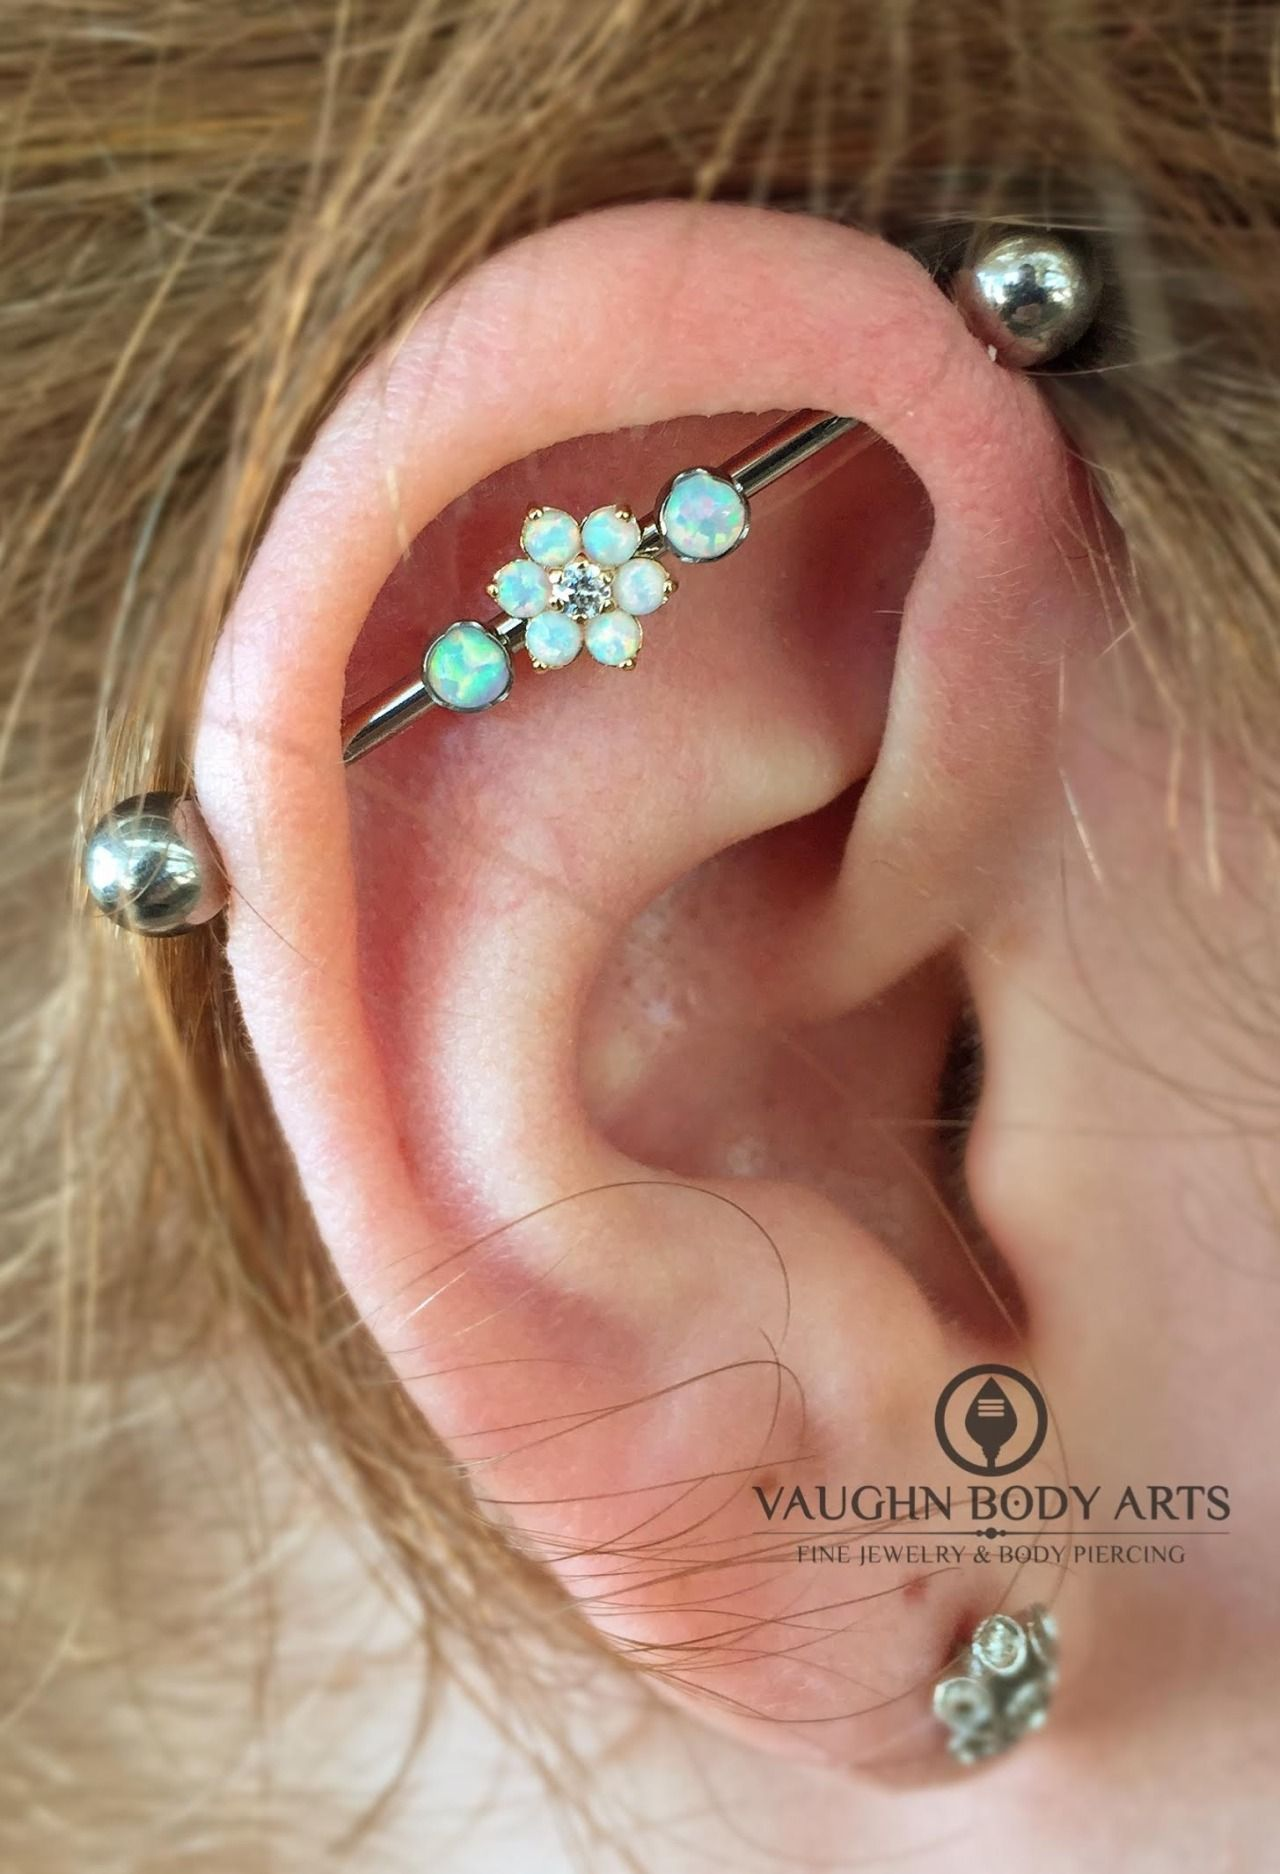 Body mod piercing  Implant grade titanium barbell with three holes drilled in the shaft